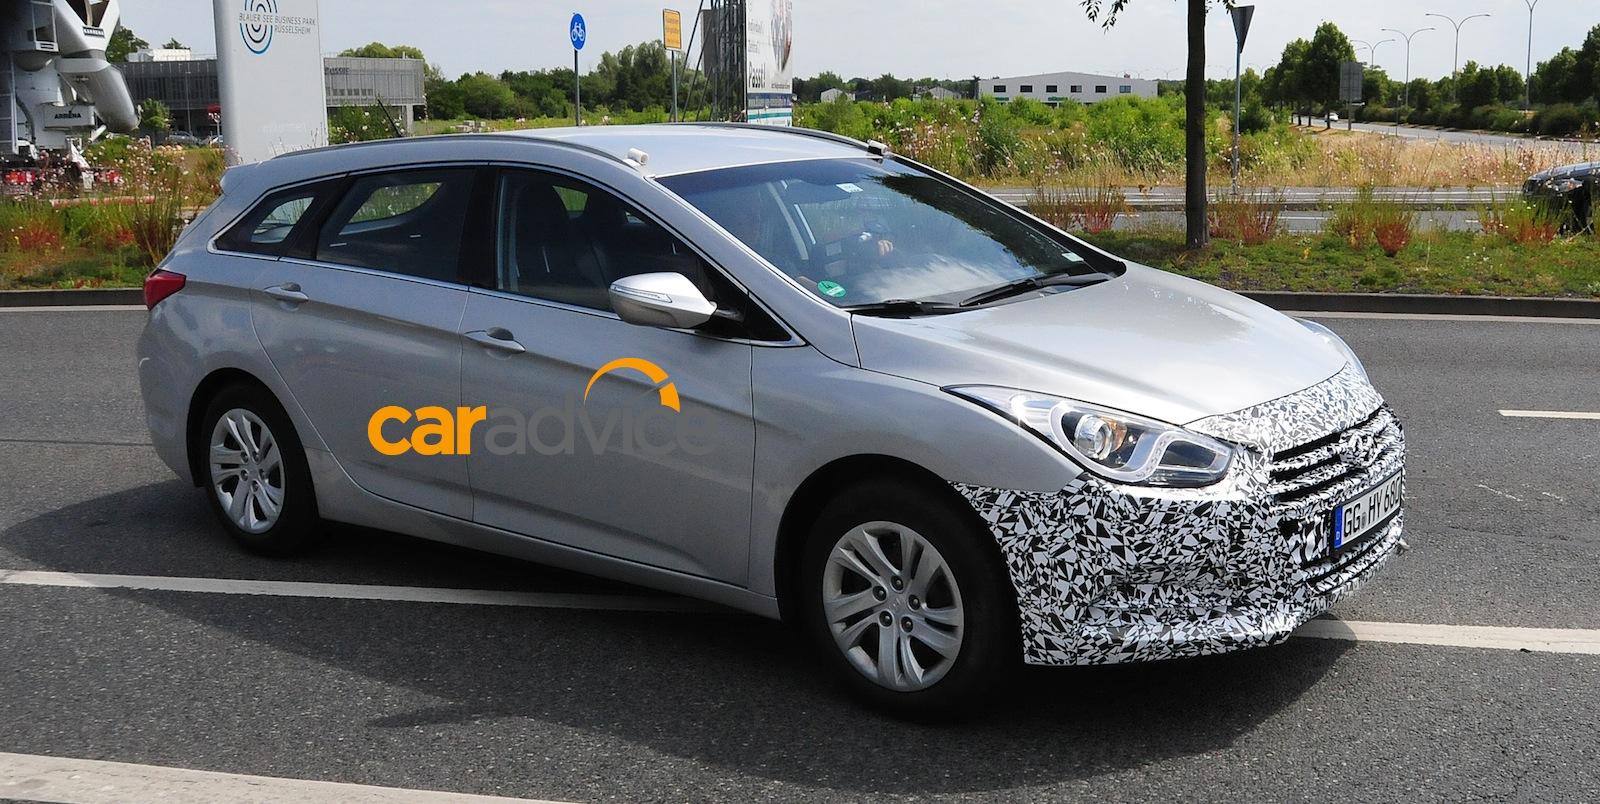 2015 hyundai i40 facelifted tourer spied photos 1 of 5. Black Bedroom Furniture Sets. Home Design Ideas